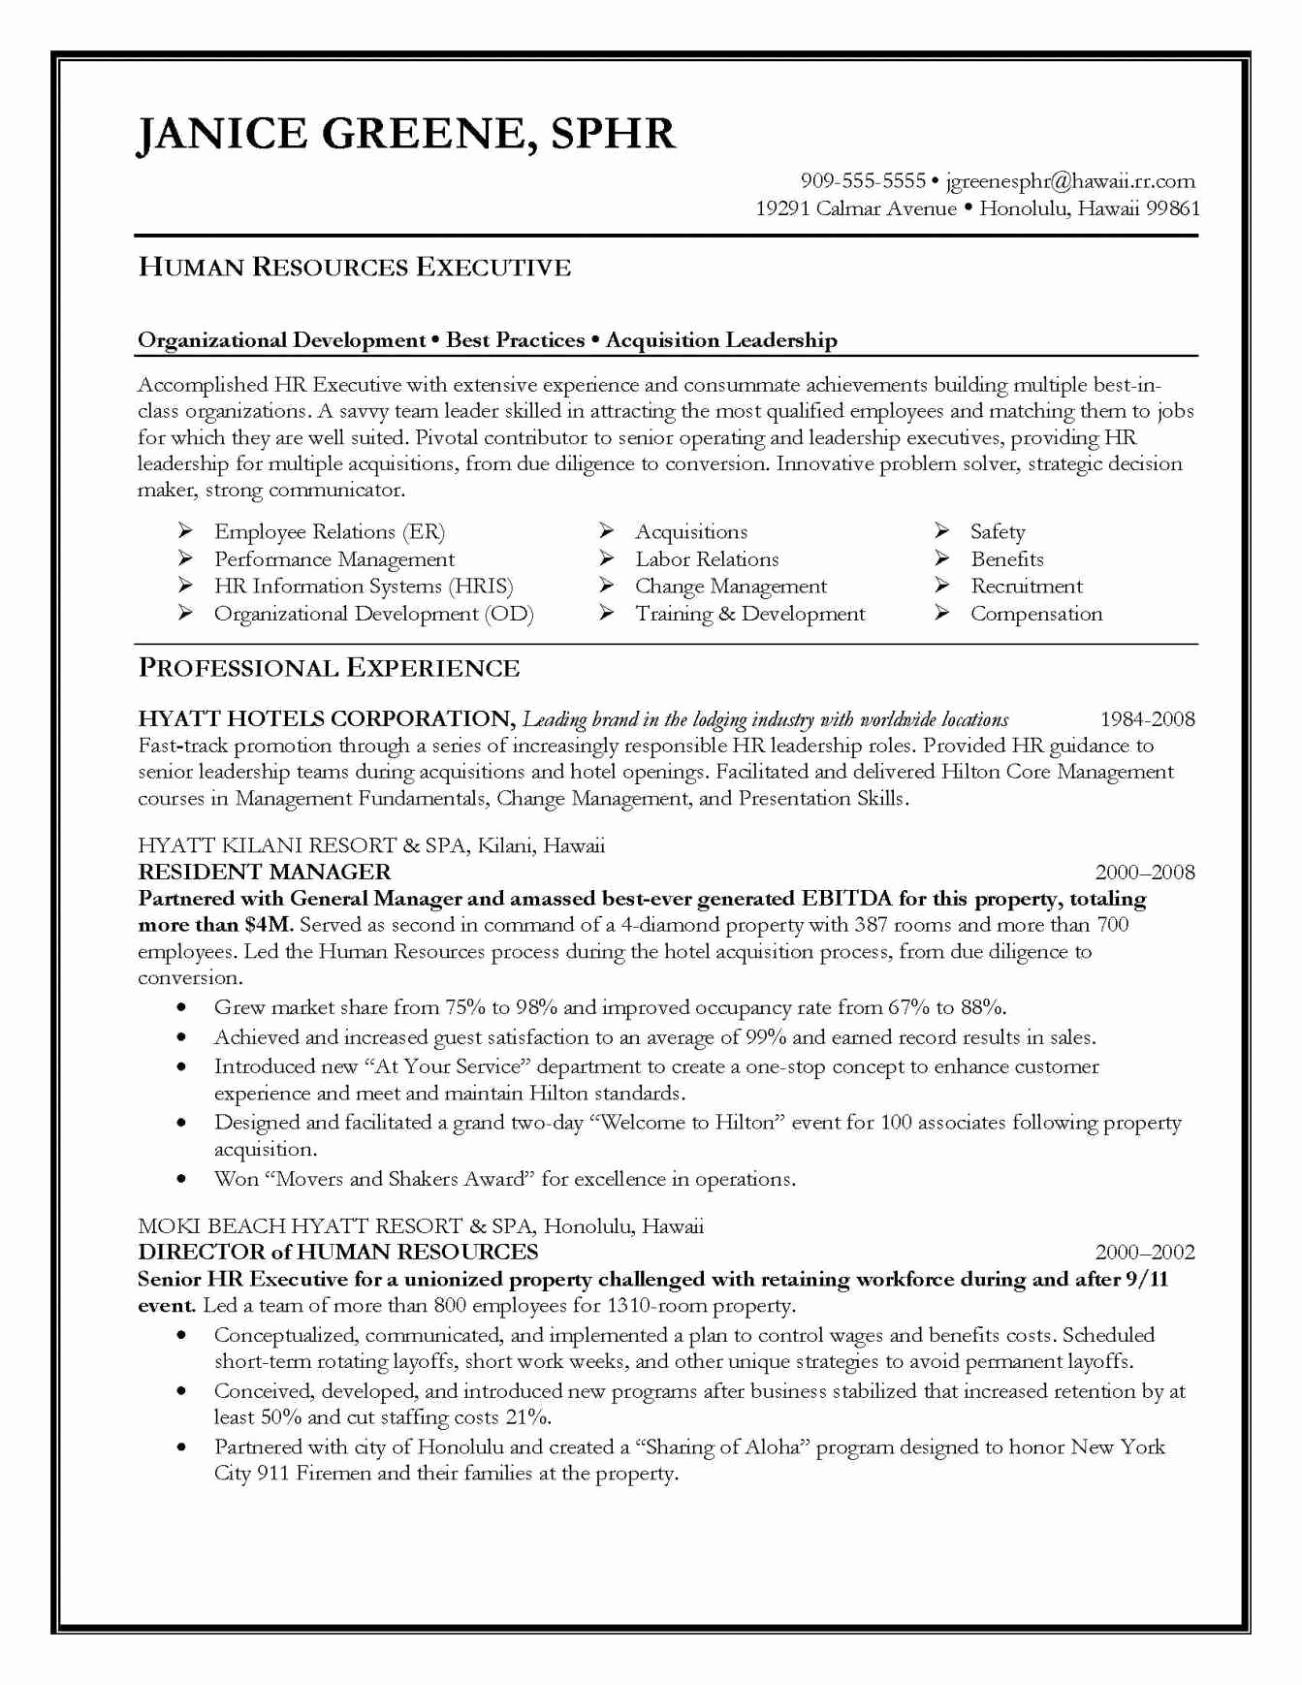 Resume Objective for Career Change - Career Change Resume Sample Awesome Resume Objective Statement Entry